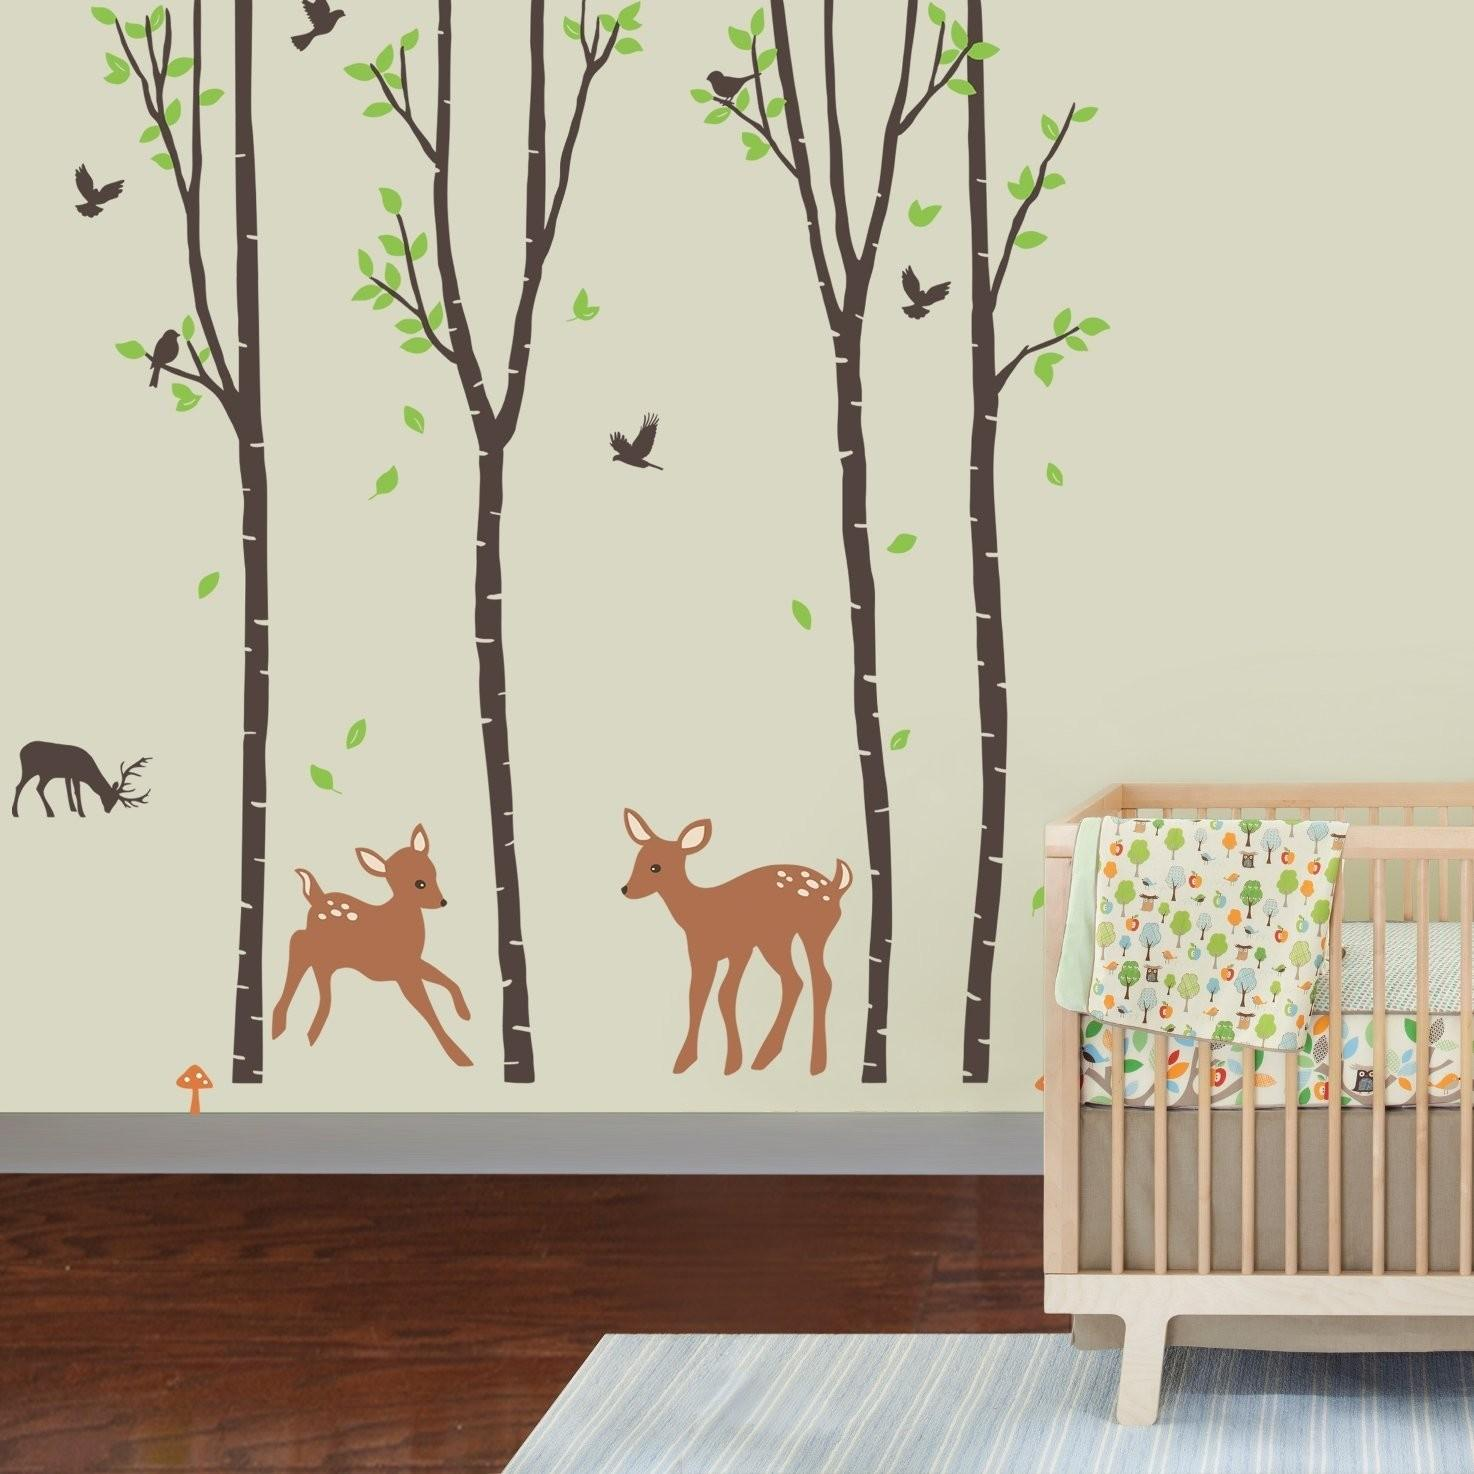 Ten Beautiful Tree Wall Decals Small Apartment